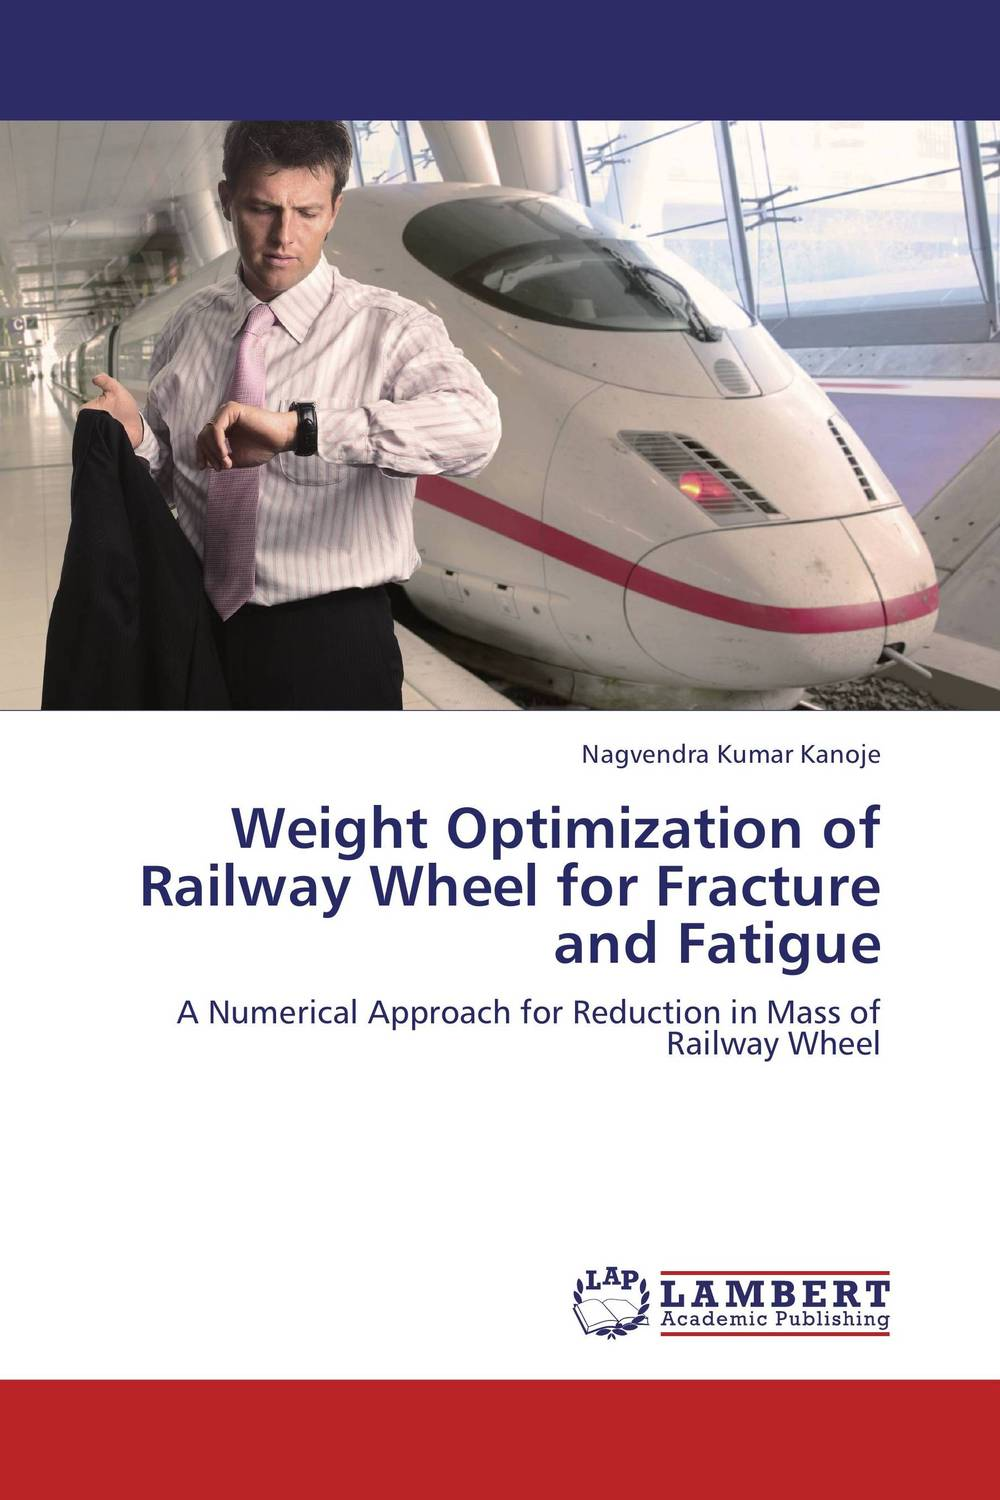 Weight Optimization of Railway Wheel for Fracture and Fatigue fatigue analysis of asphalt concrete based on crack development